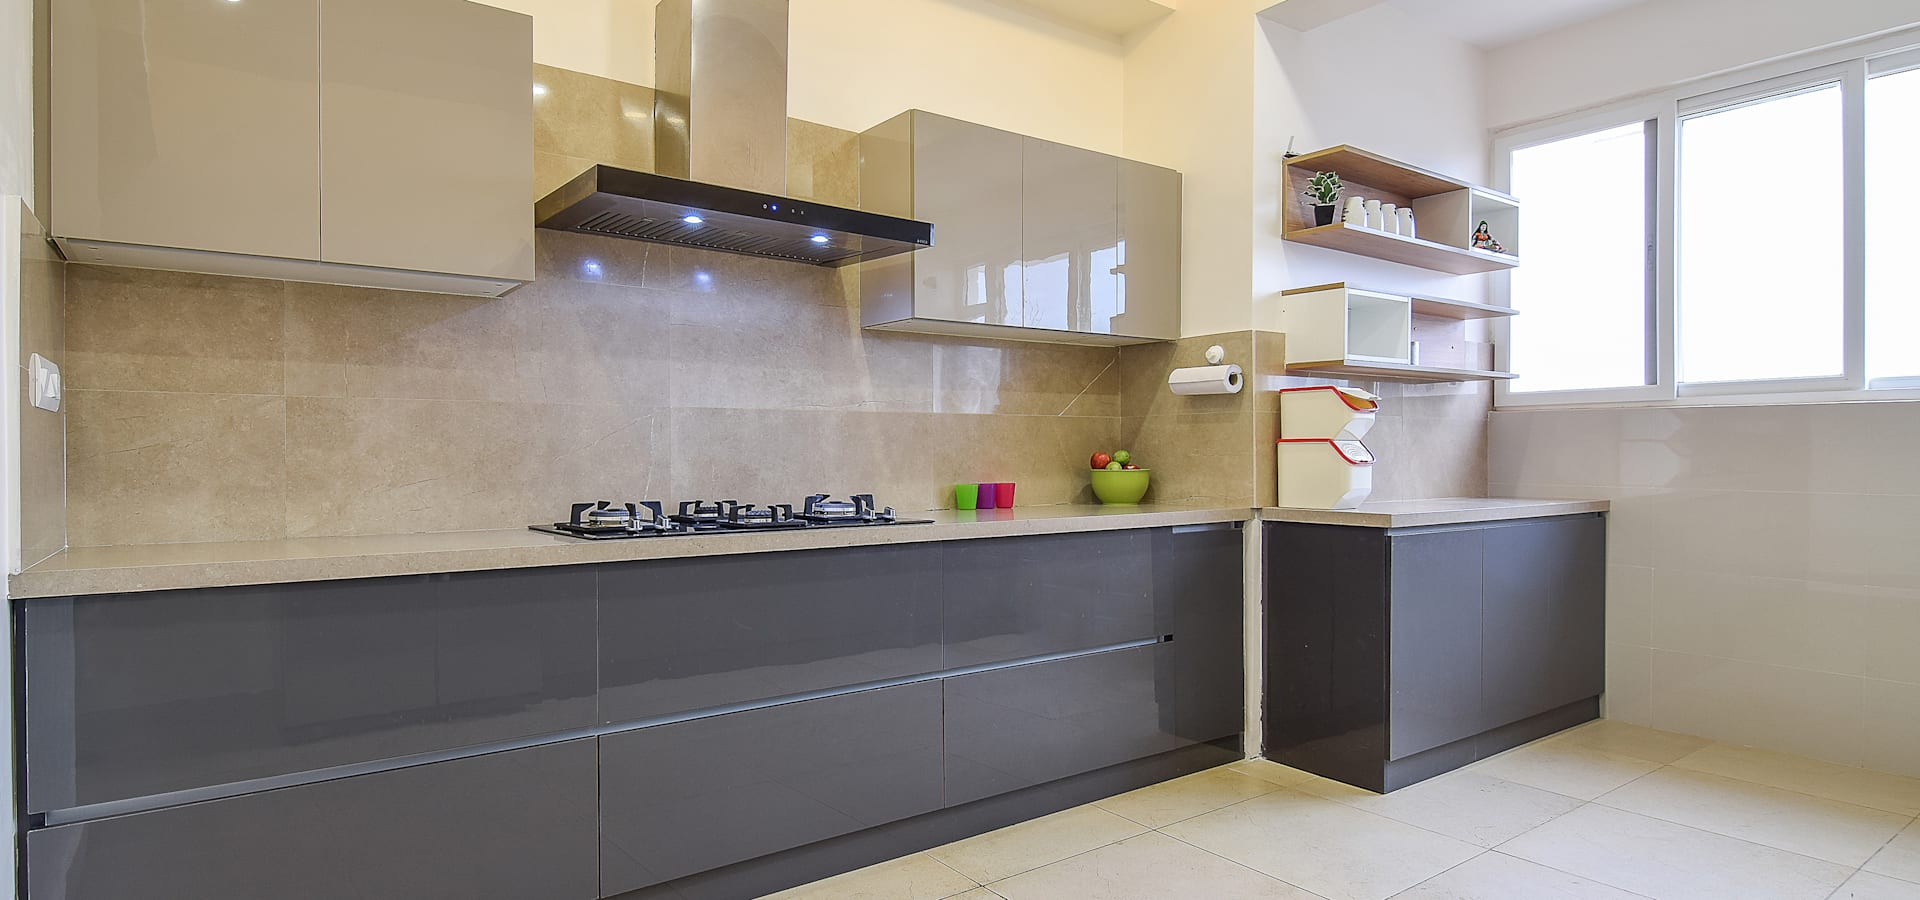 Interior design bangalore 2bhk apartment by design arc - Apartment interiors in bangalore ...